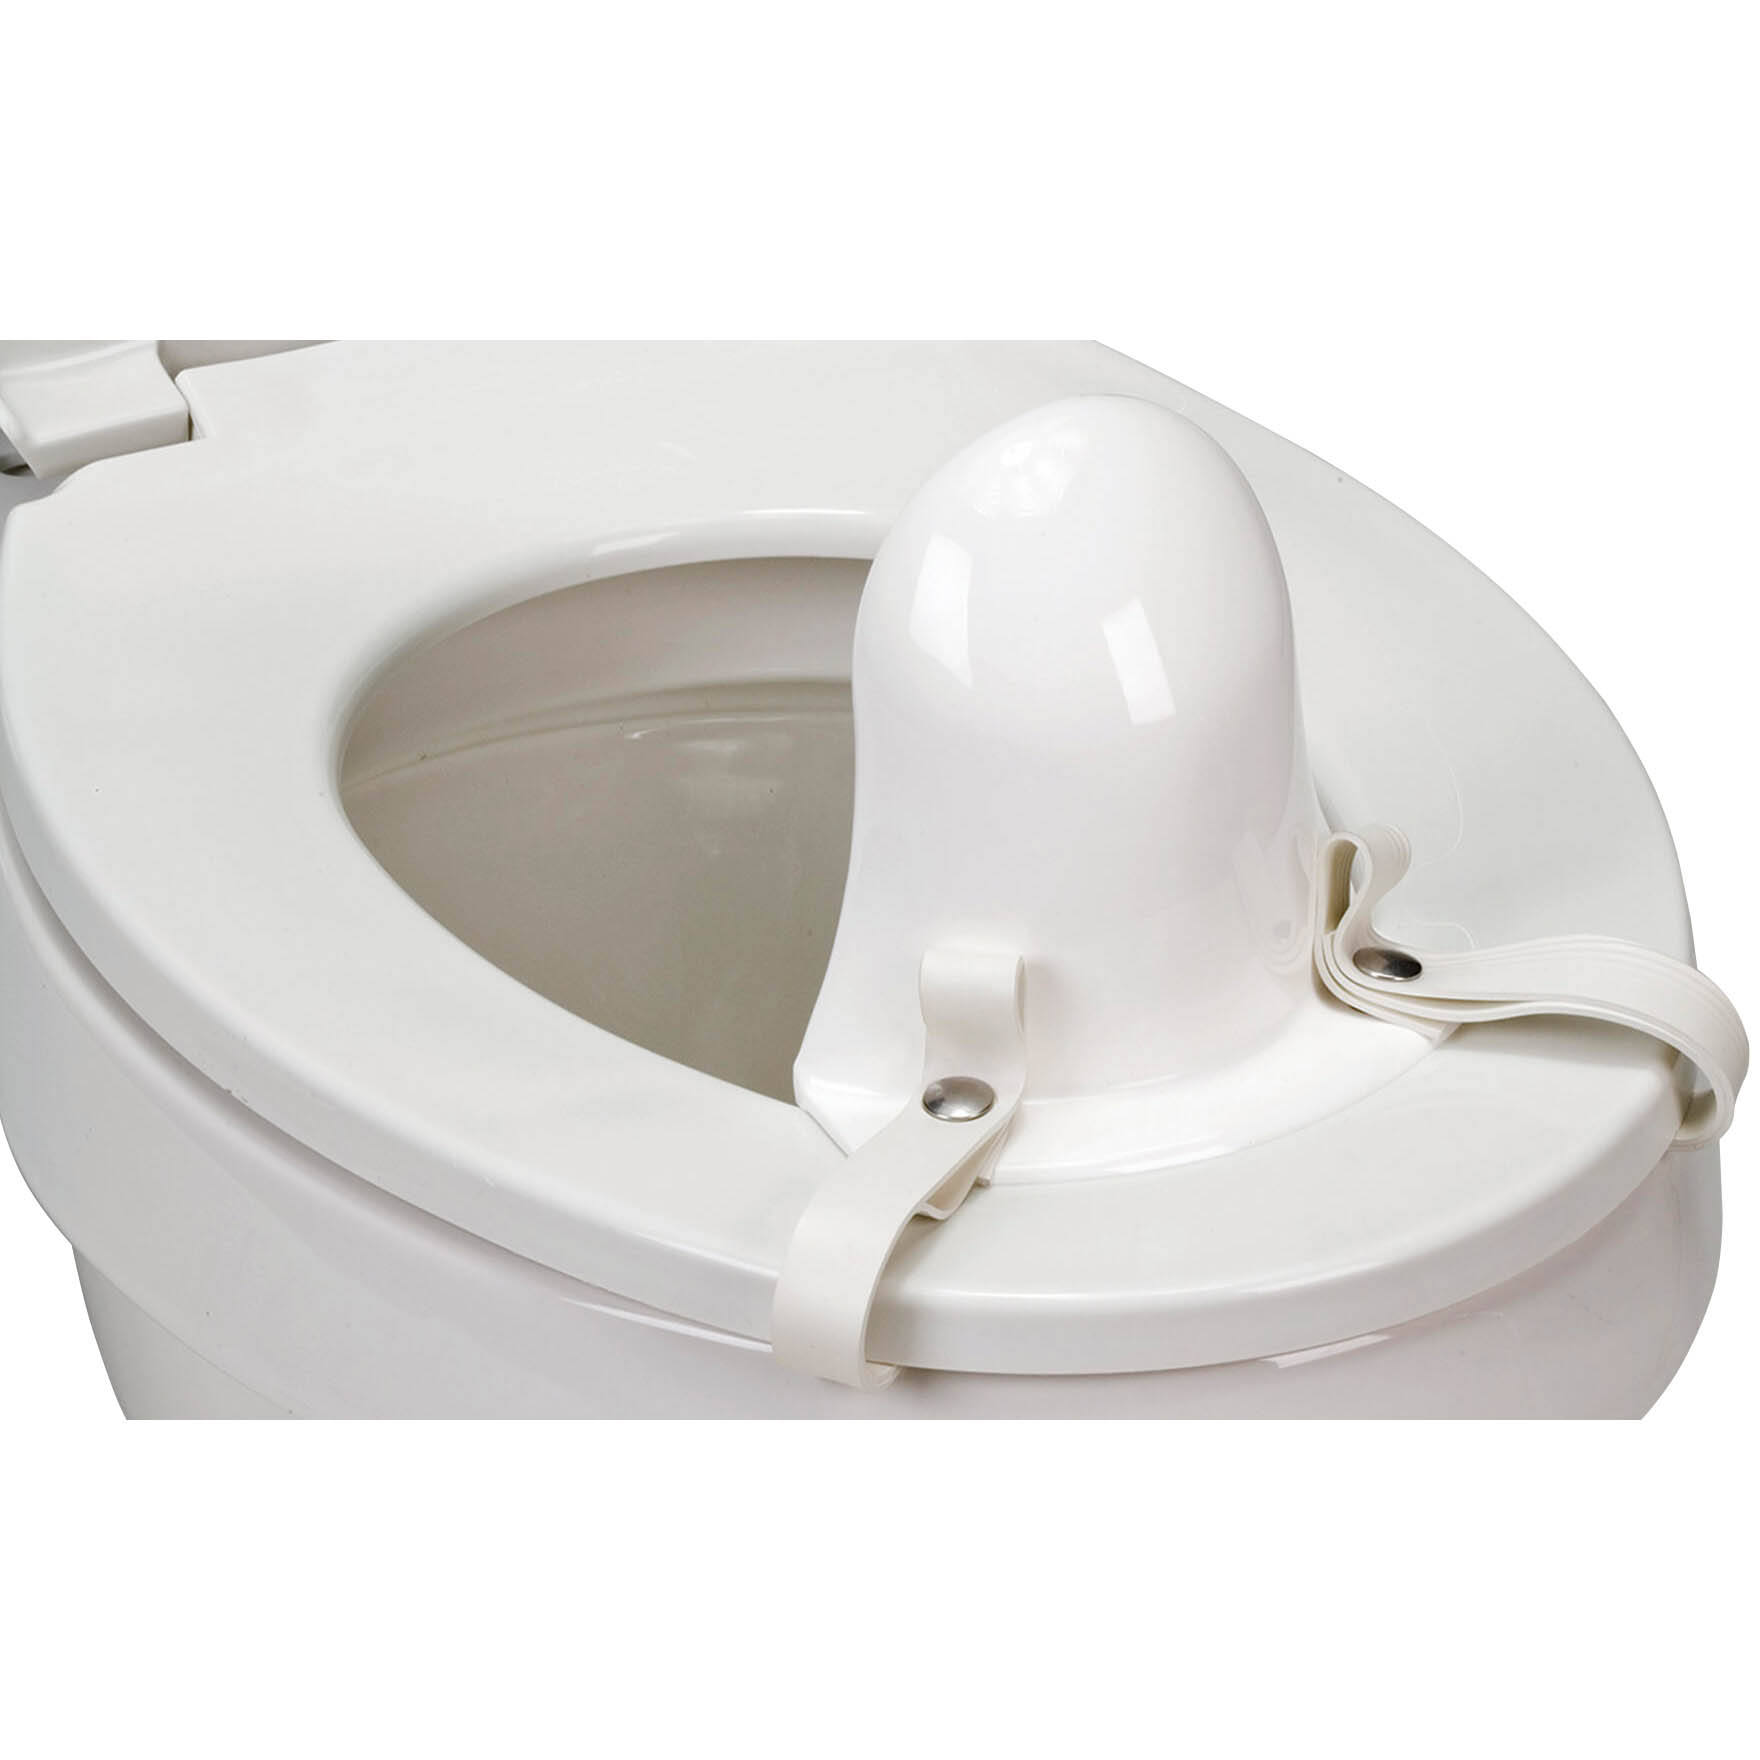 Soft-Flex Splash Guard For Toilet Support System | Inspired By Drive (Tz-A4975)